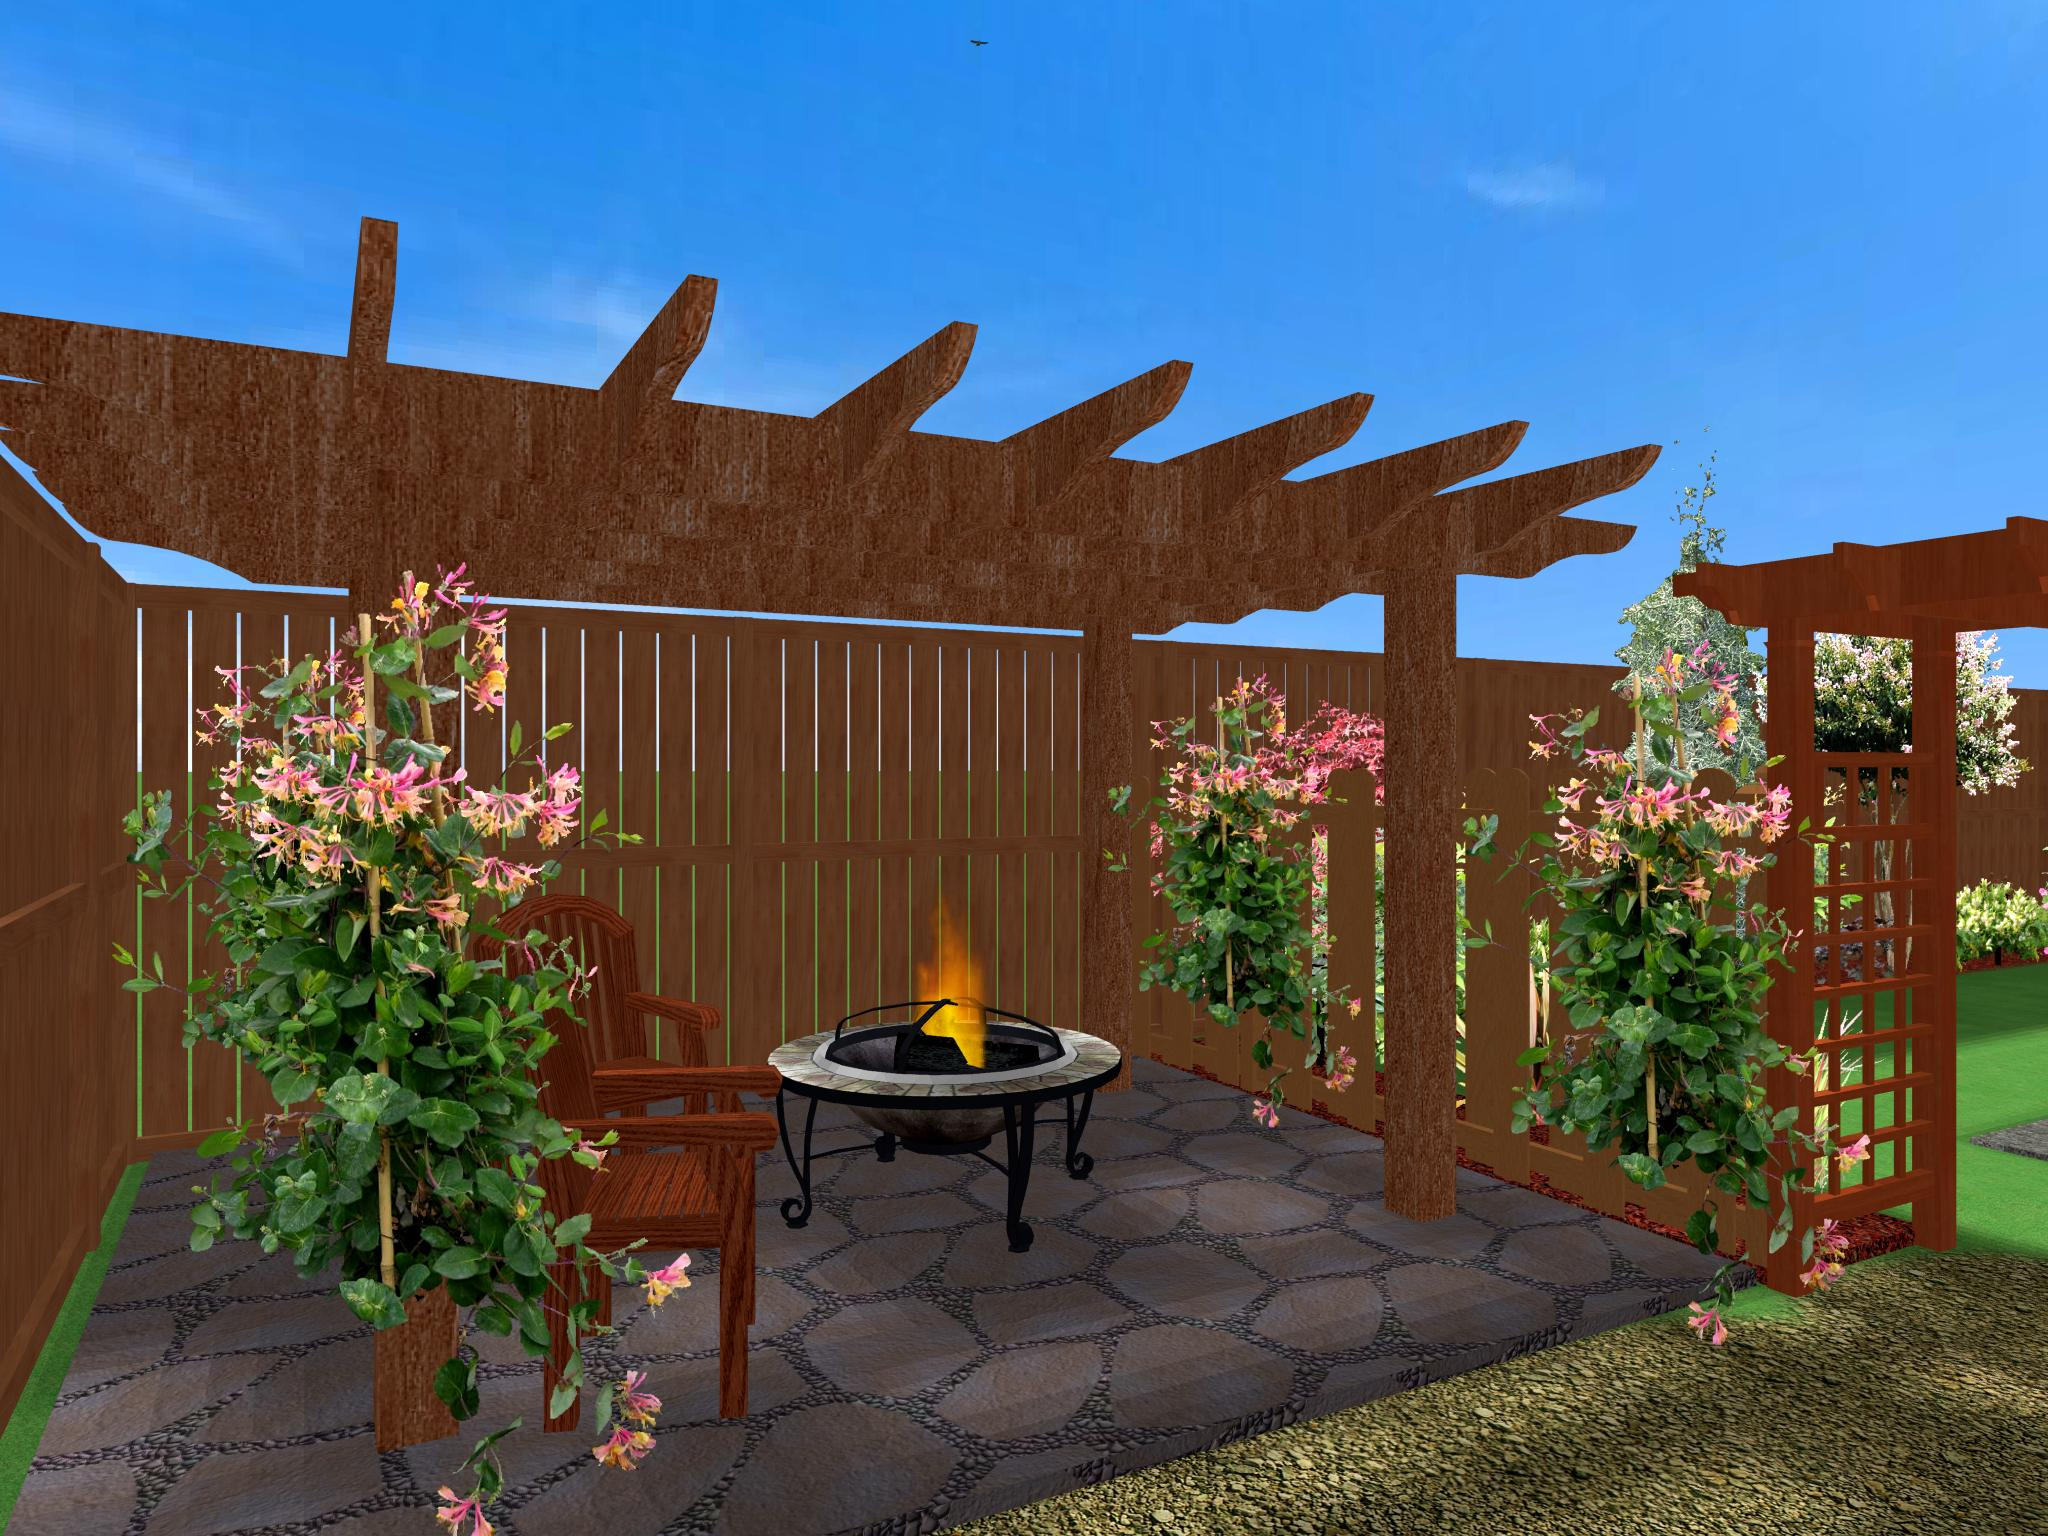 knowingcyrille: Out of doors Patio design software